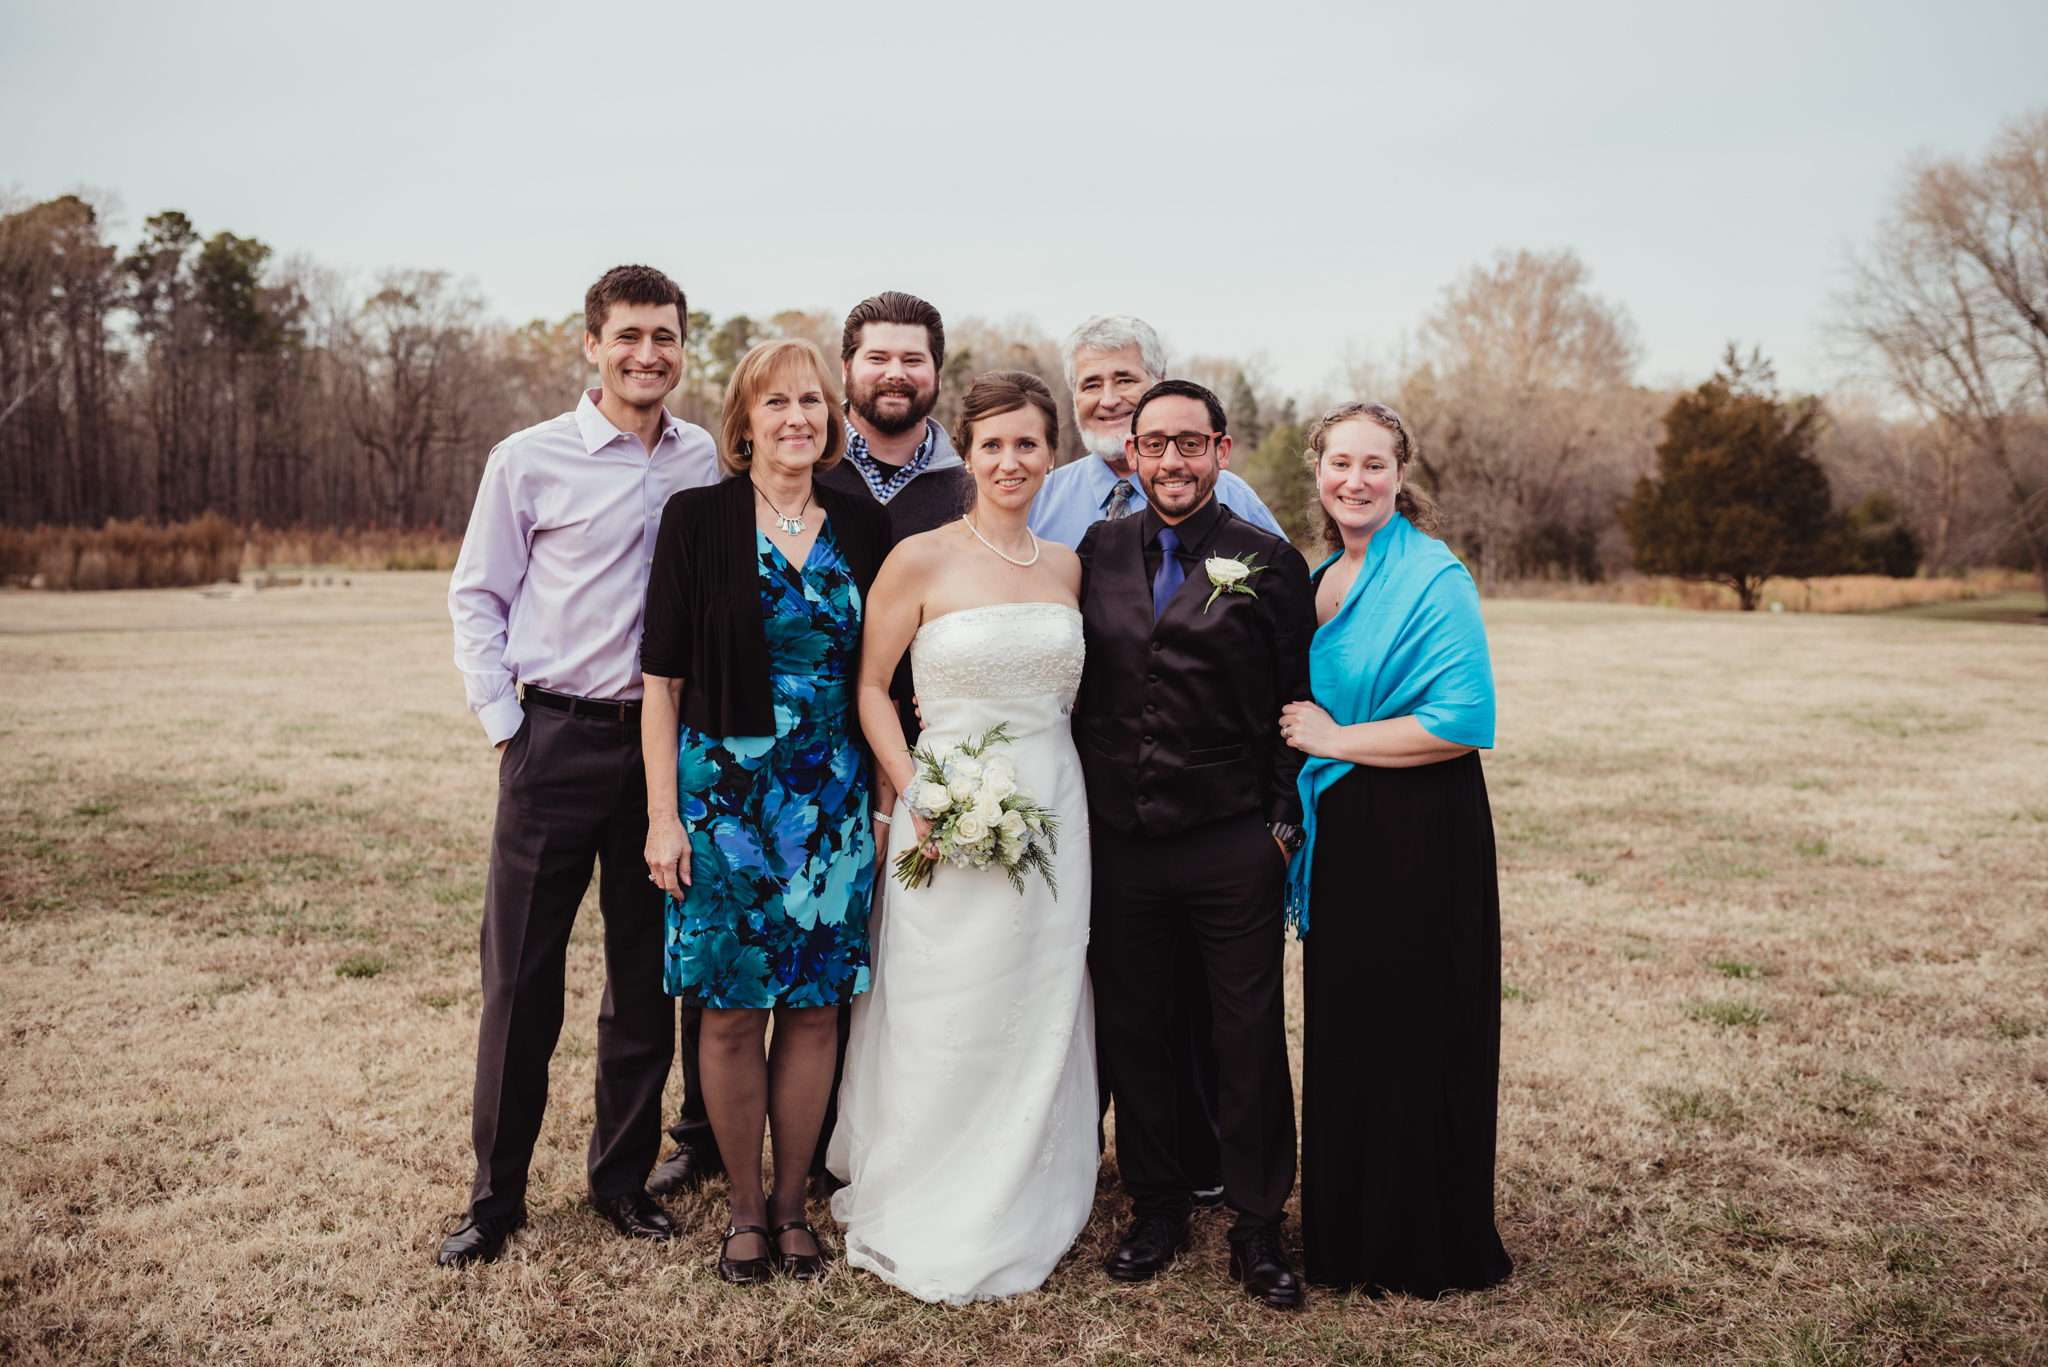 the-bride-and-groom-with-the-brides-family-in-the-park-in-Raleigh.jpg